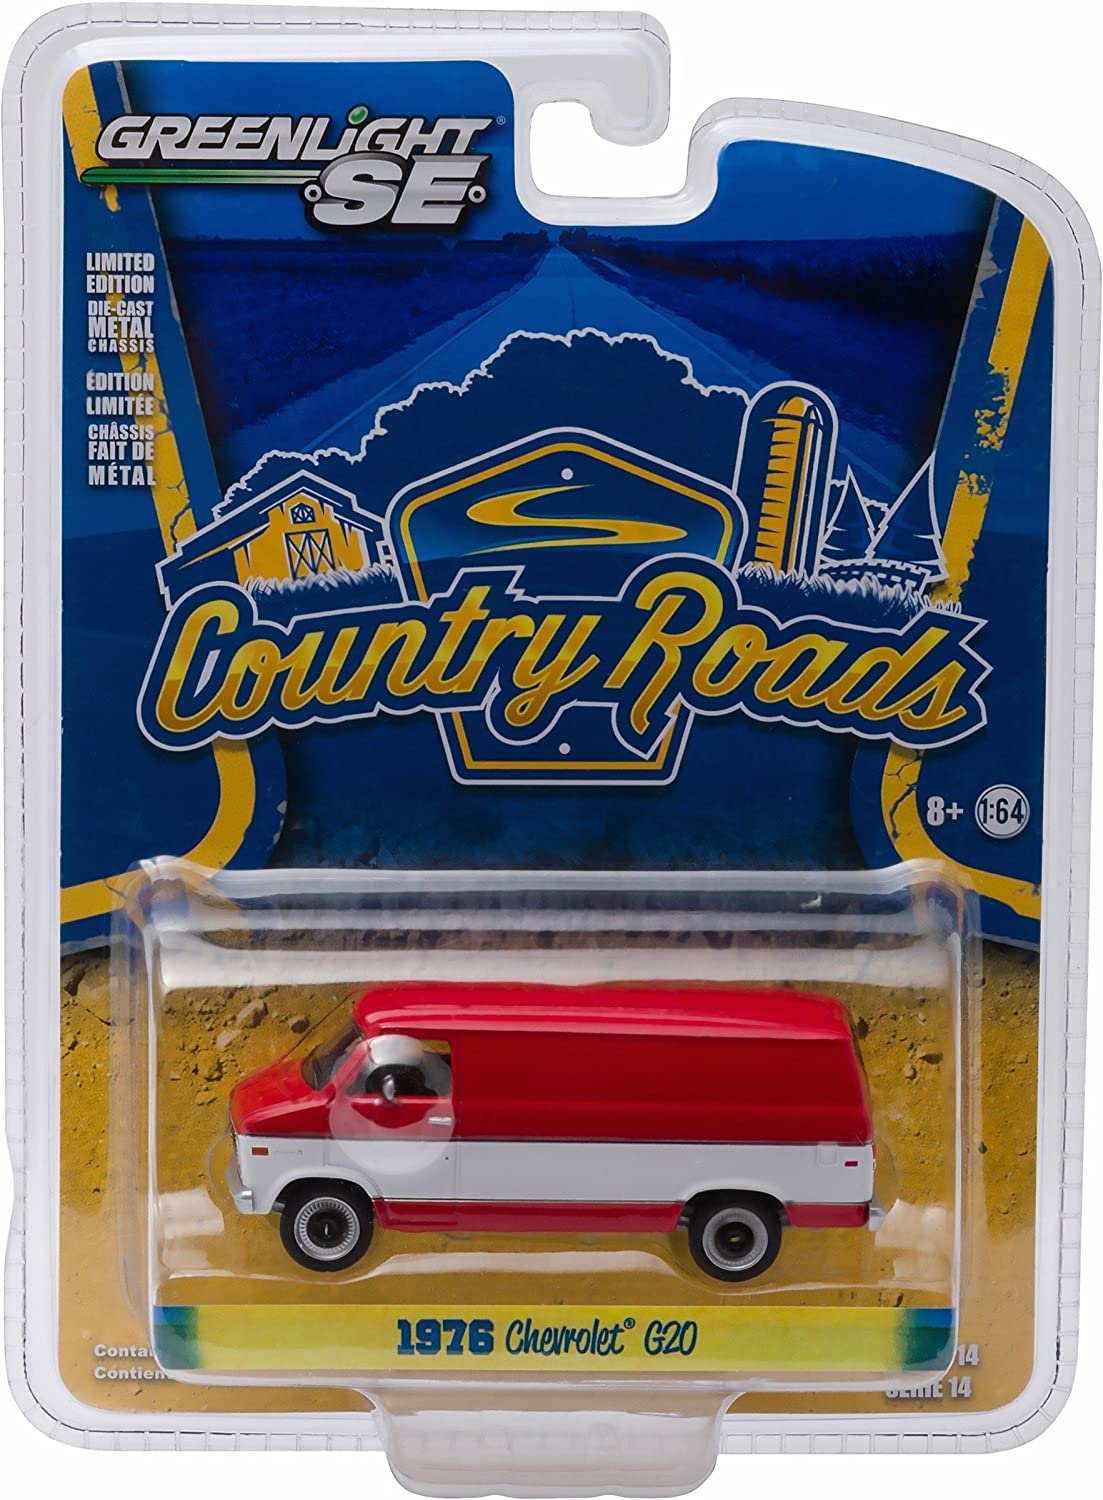 1976 CHEVROLET G20 VAN  Country Roads Series 14  2016 Greenlight Collectibles 1 64 Scale DieCast Vehicle by Greenlight